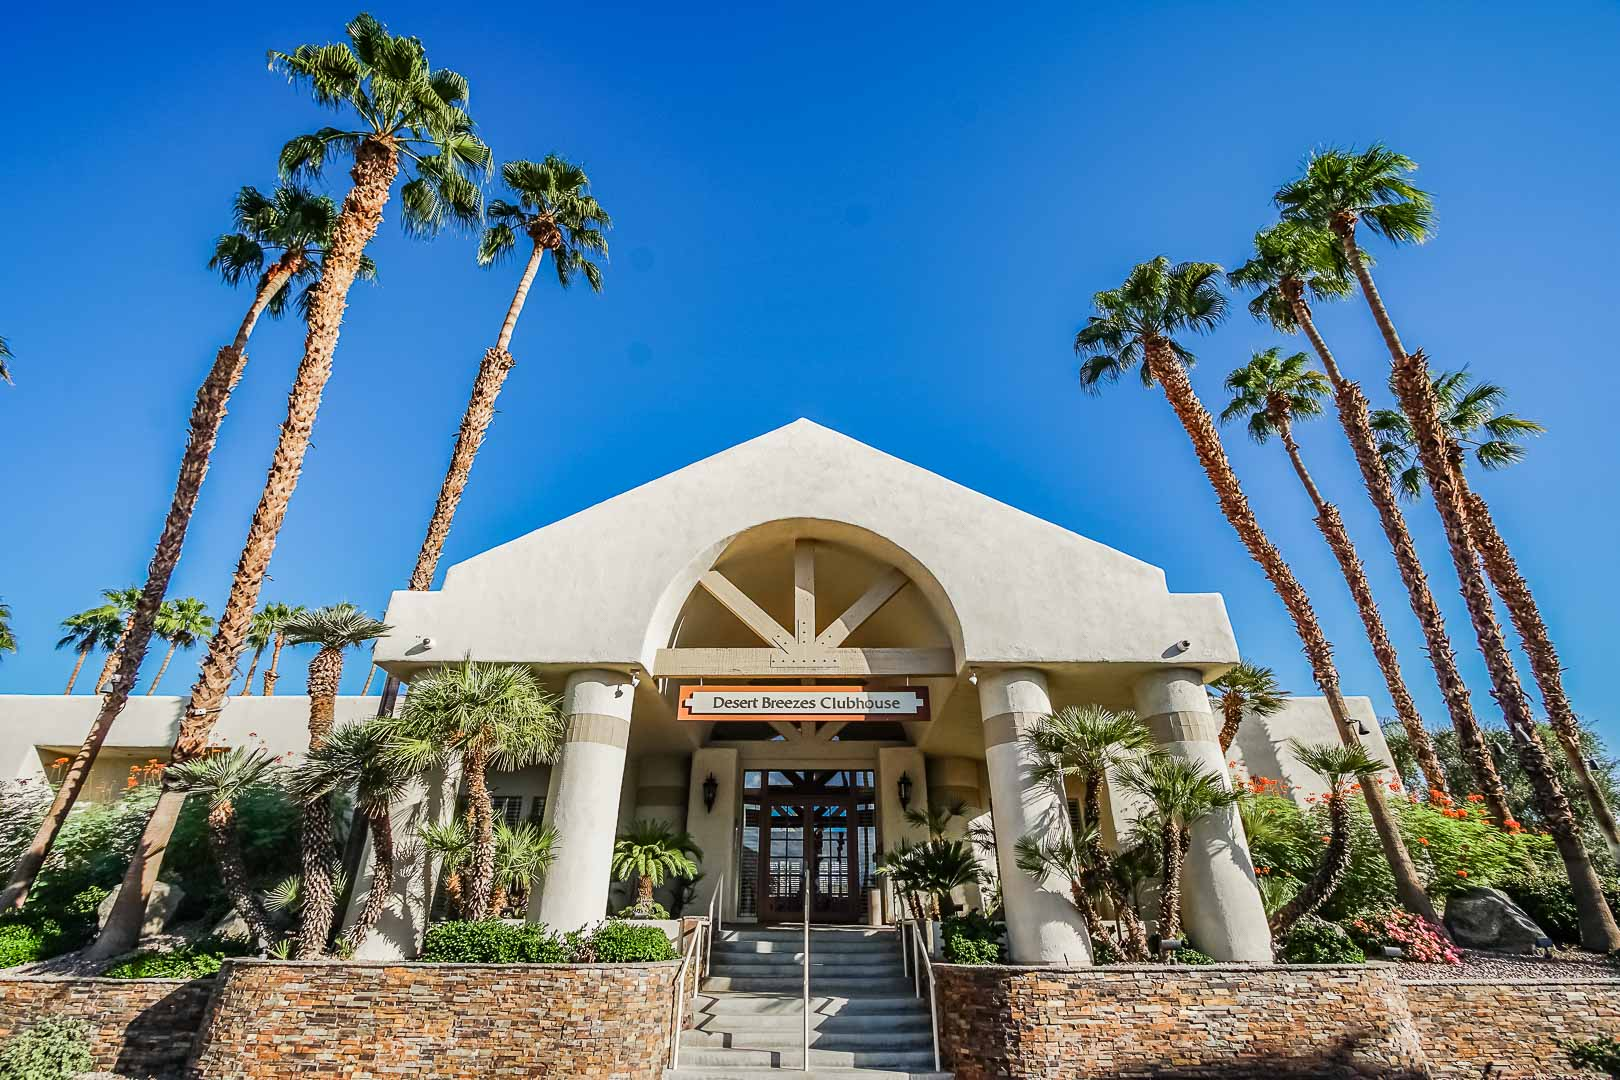 The inviting Clubhouse at a VRI Americas' Desert Breezes Resort in California.